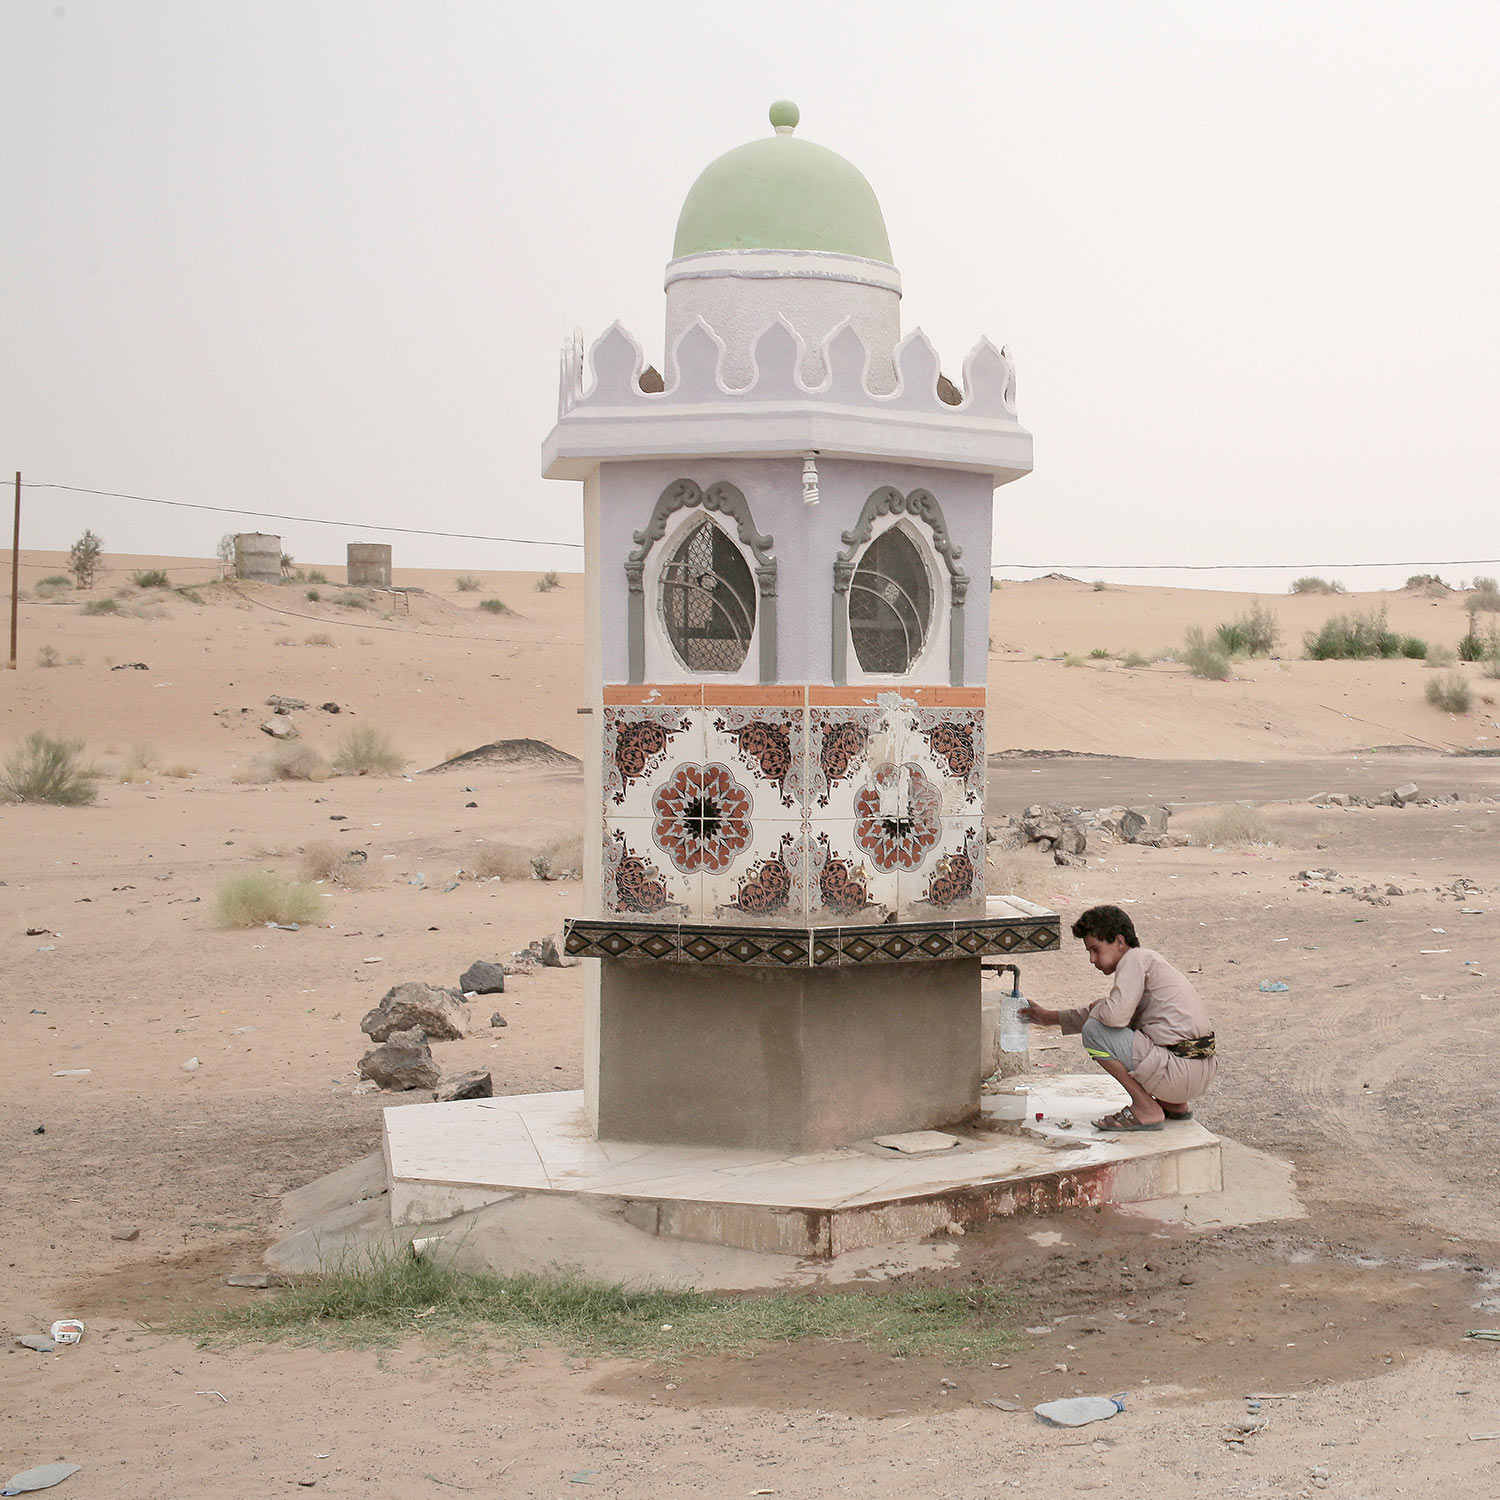 In this July 29, 2018 photo, a boy collects water from a fountain on a roadside in Marib, Yemen. (AP Photo/Nariman El-Mofty)